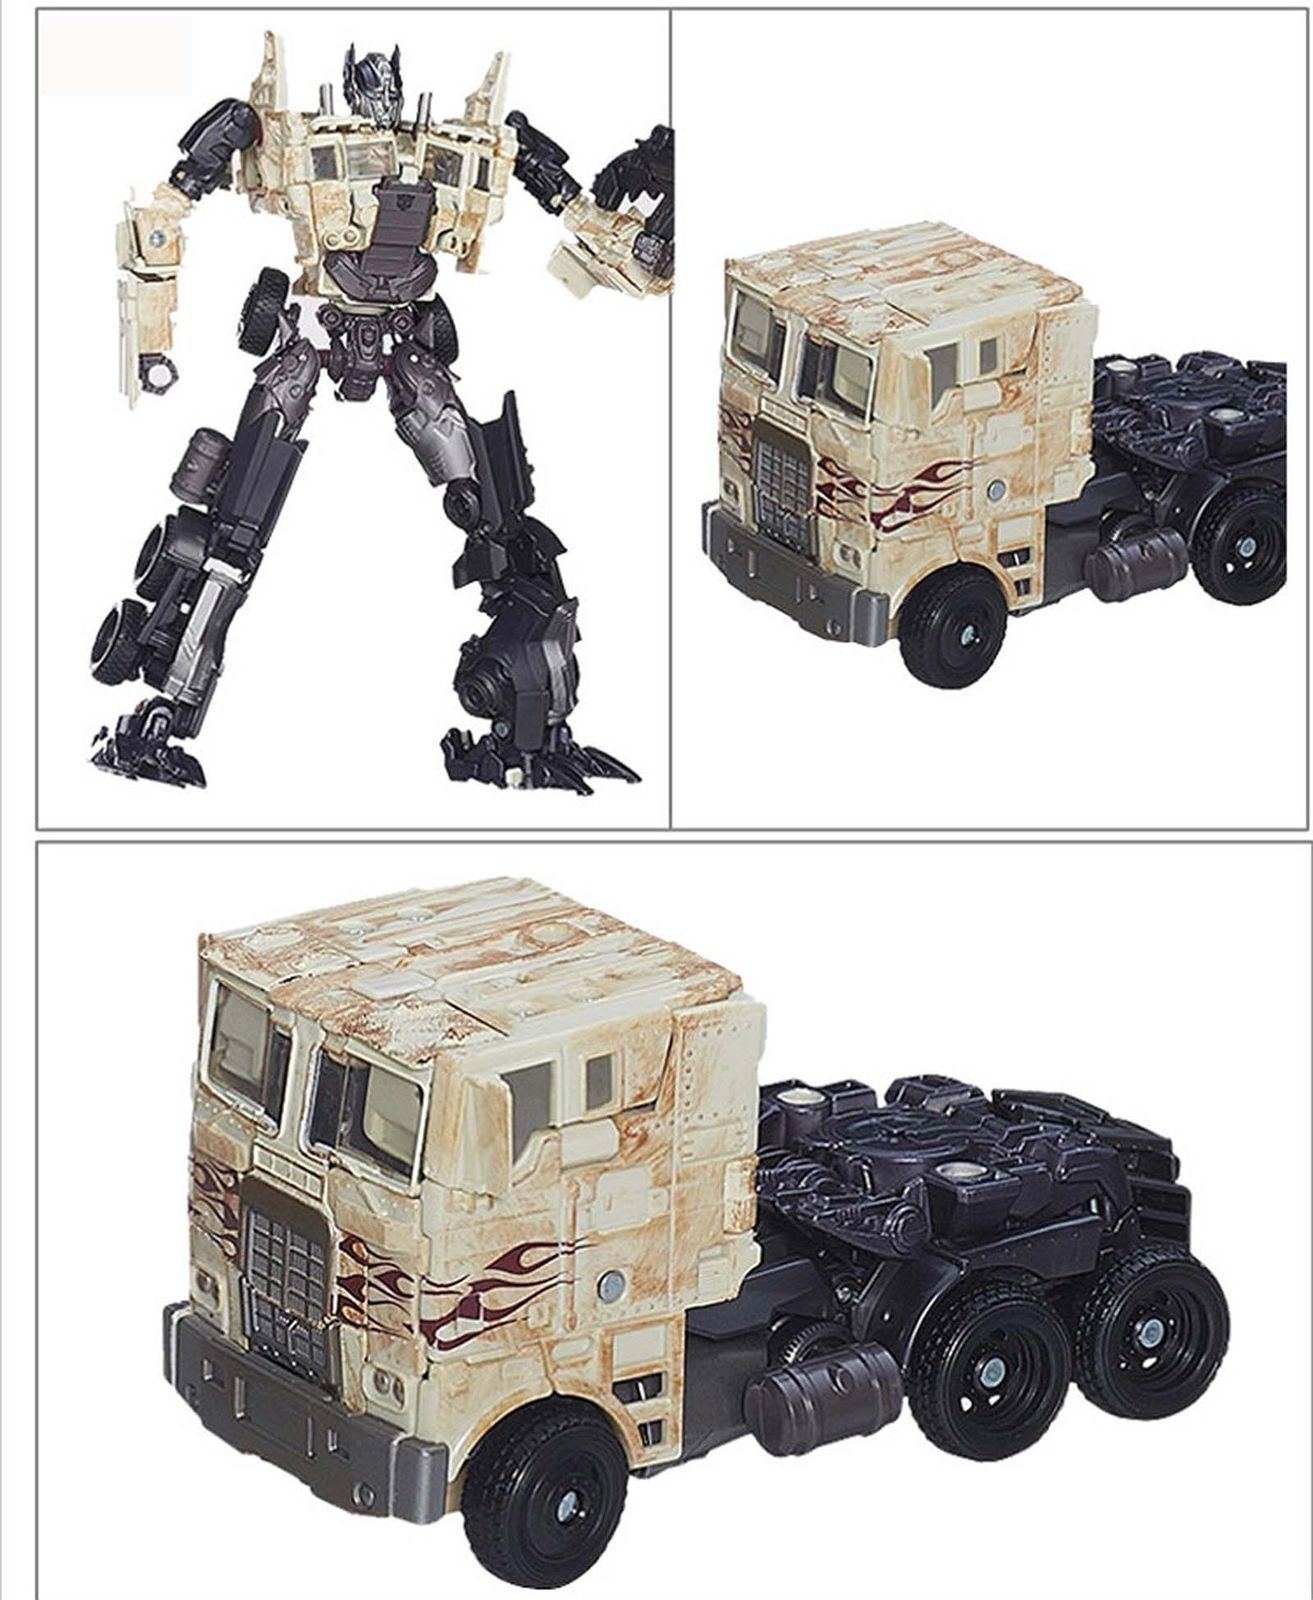 Hasbro Transformers Breakout Battle Rusty Scrapyard Optimus Prime Loose Figure